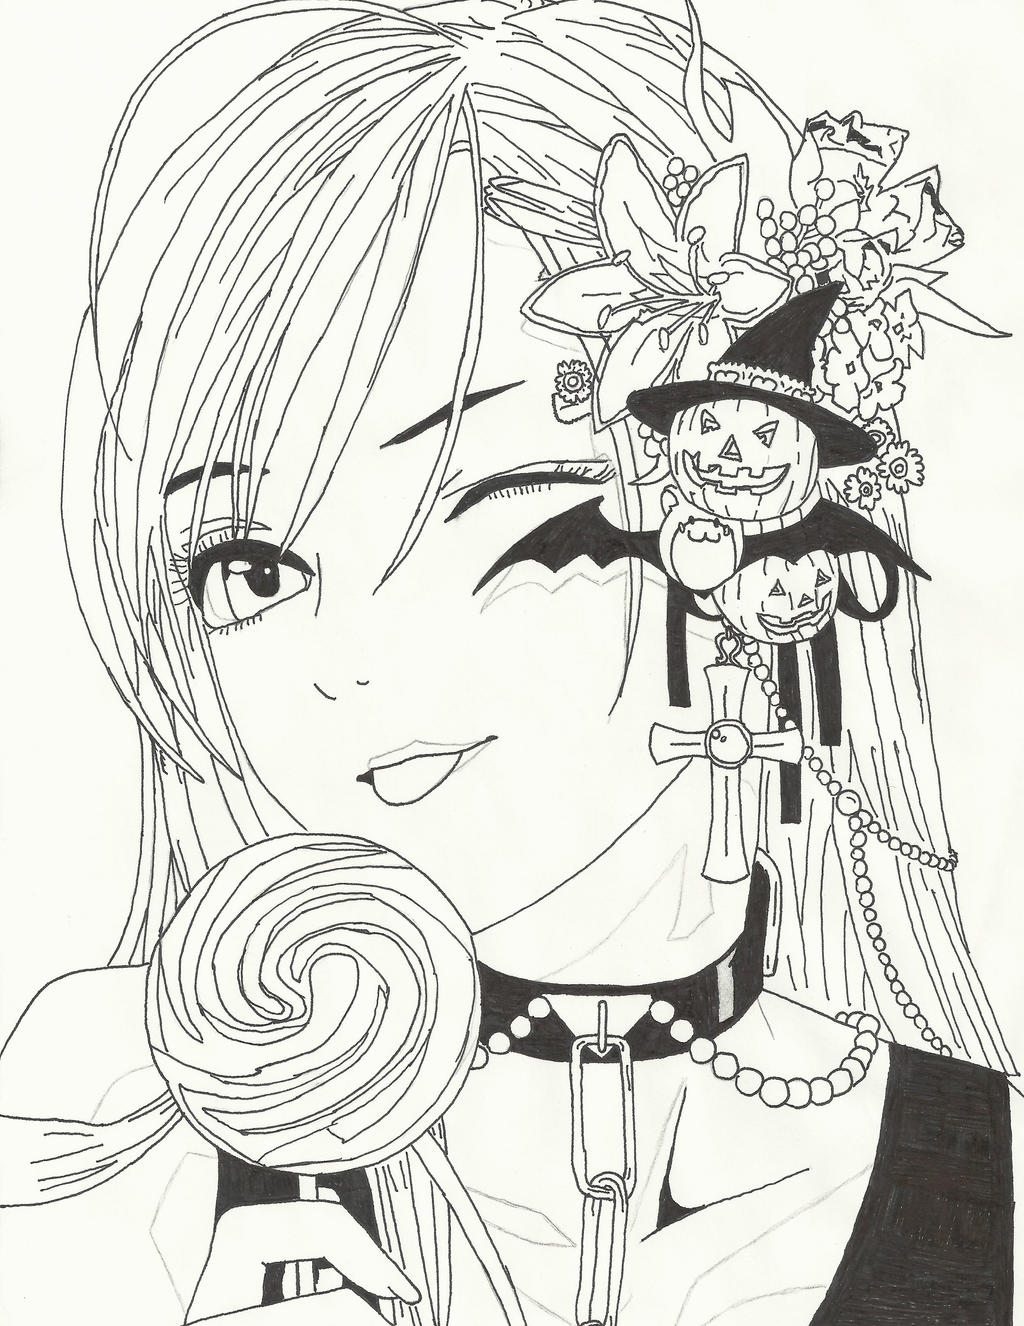 vampire anime coloring pages - photo#35